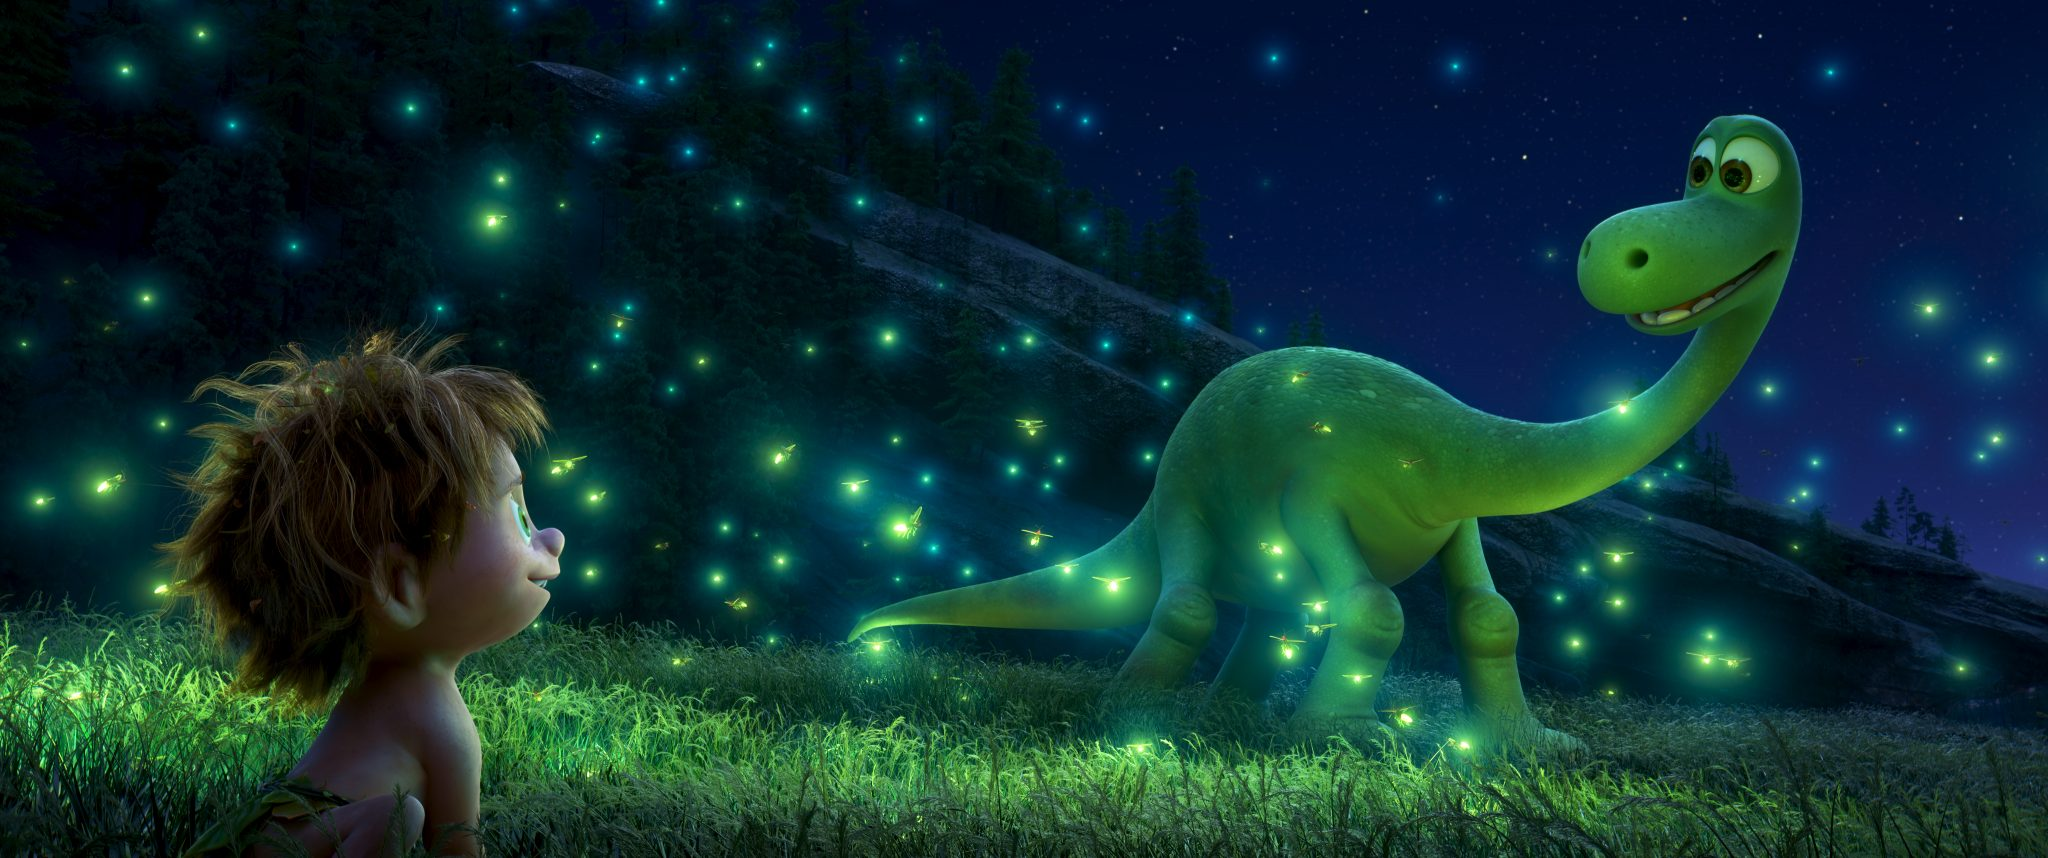 Free Coloring Pages and Activities From The Good Dinosaur - Disney Gals